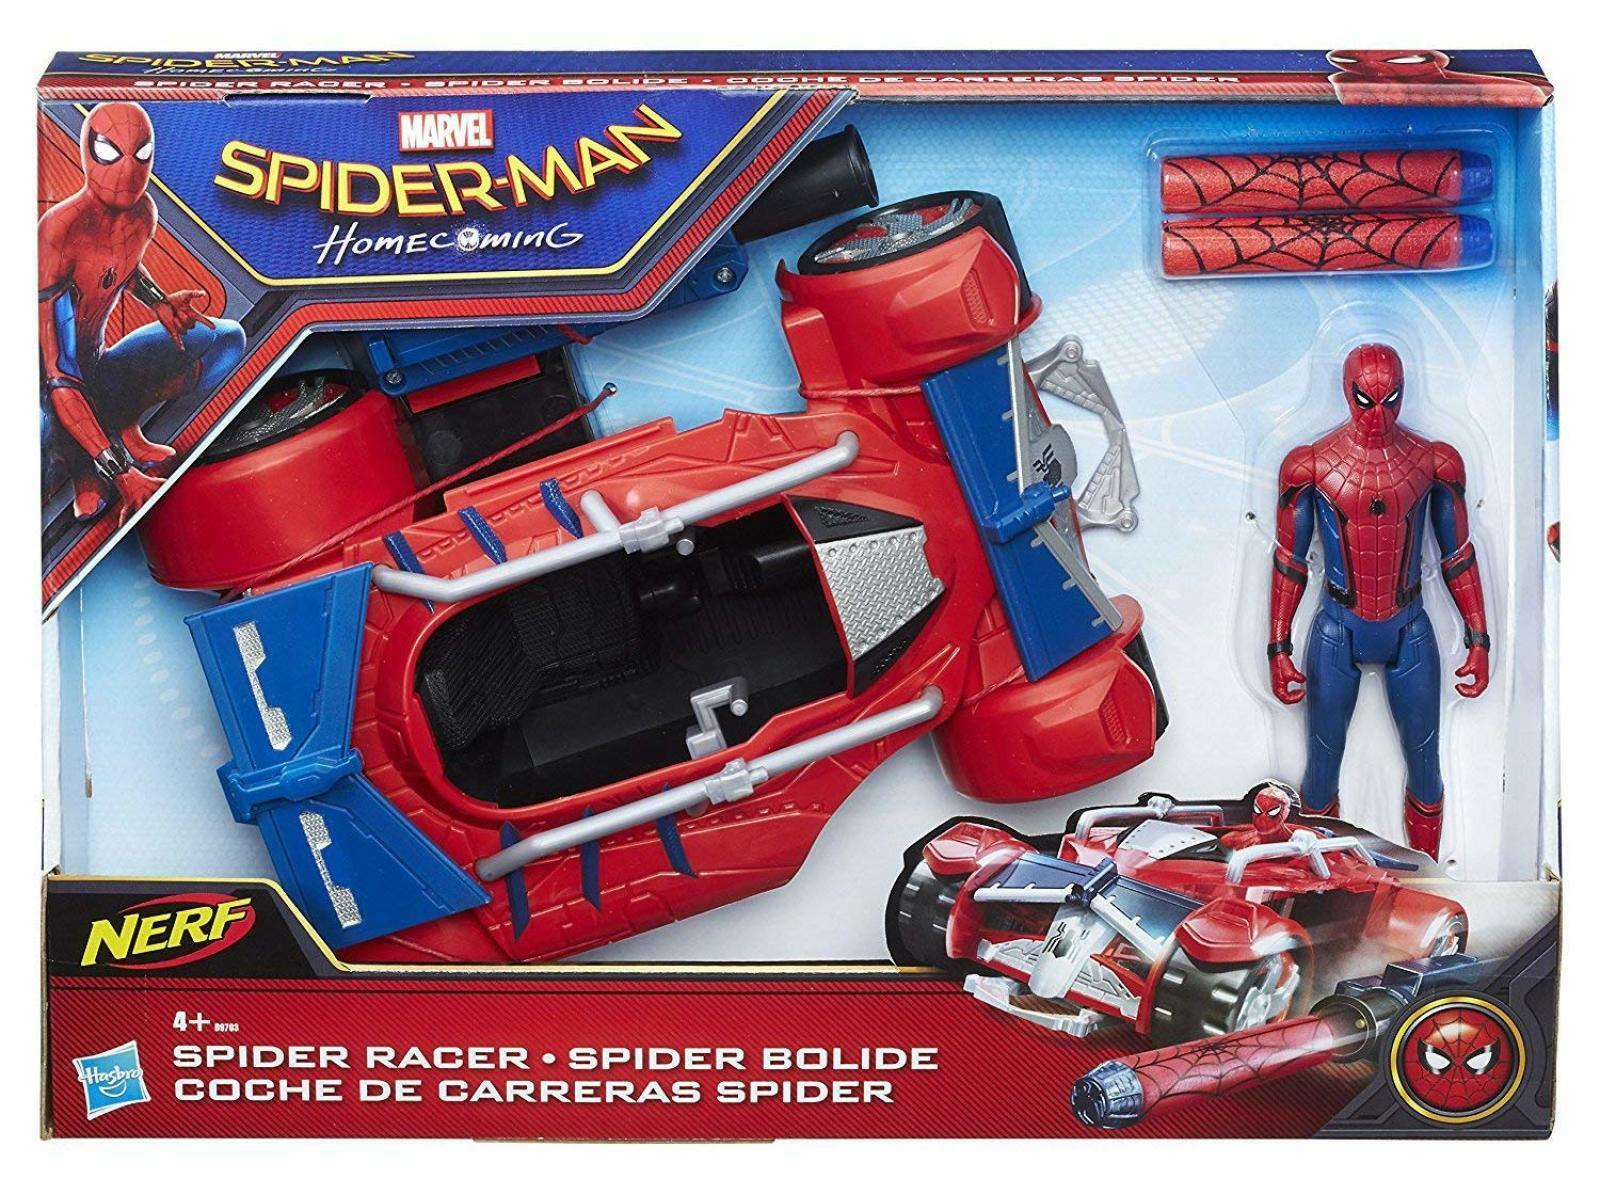 Spider Man Homecoming Spider Racer Car Vehicle Action Figure Set Box Xmas Gift